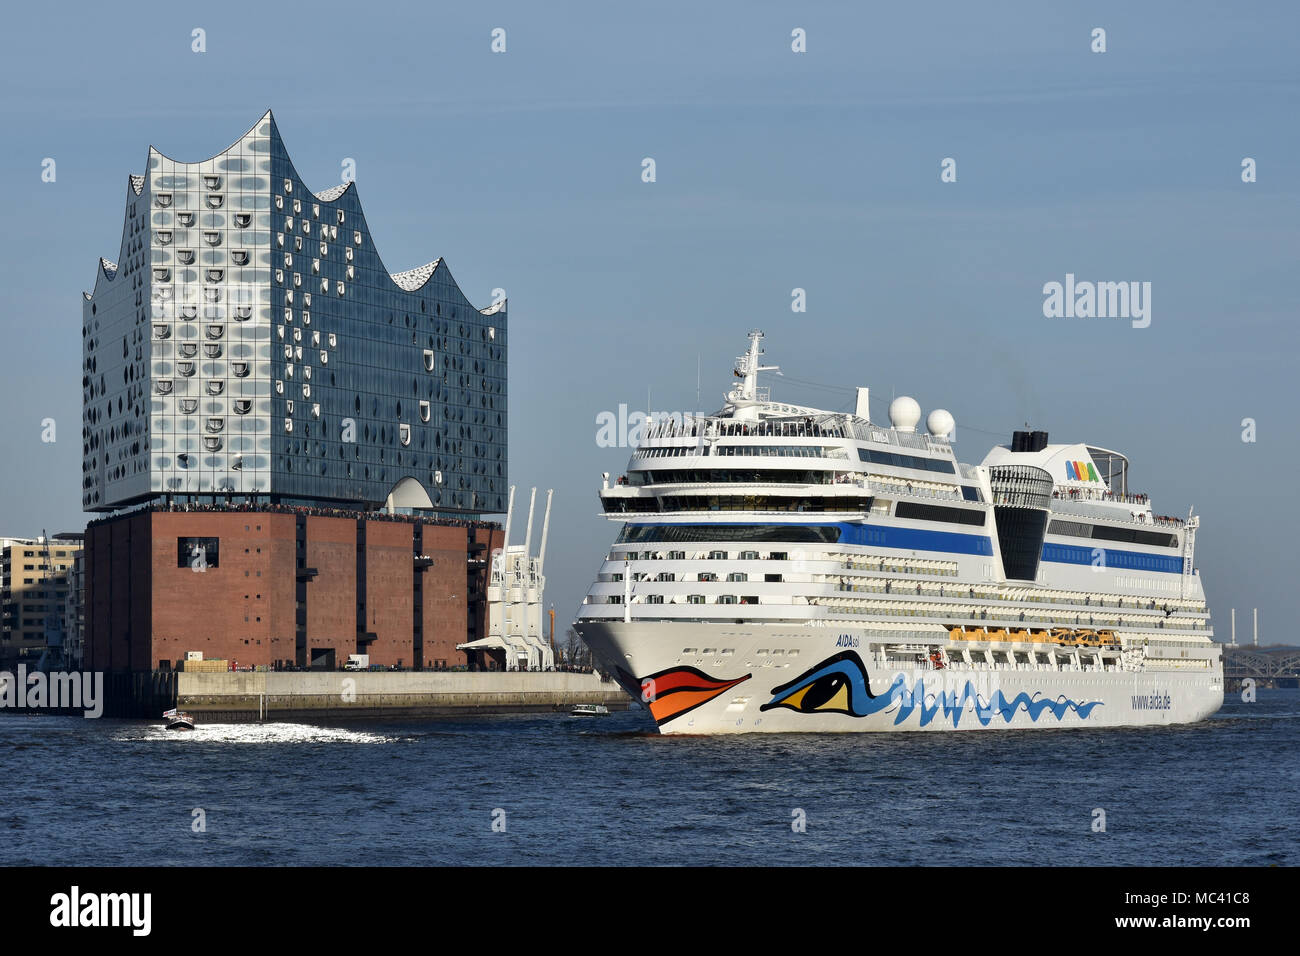 AIDAsol outbound from Hamburg passing the Elbphilharmonie concert hall - Stock Image